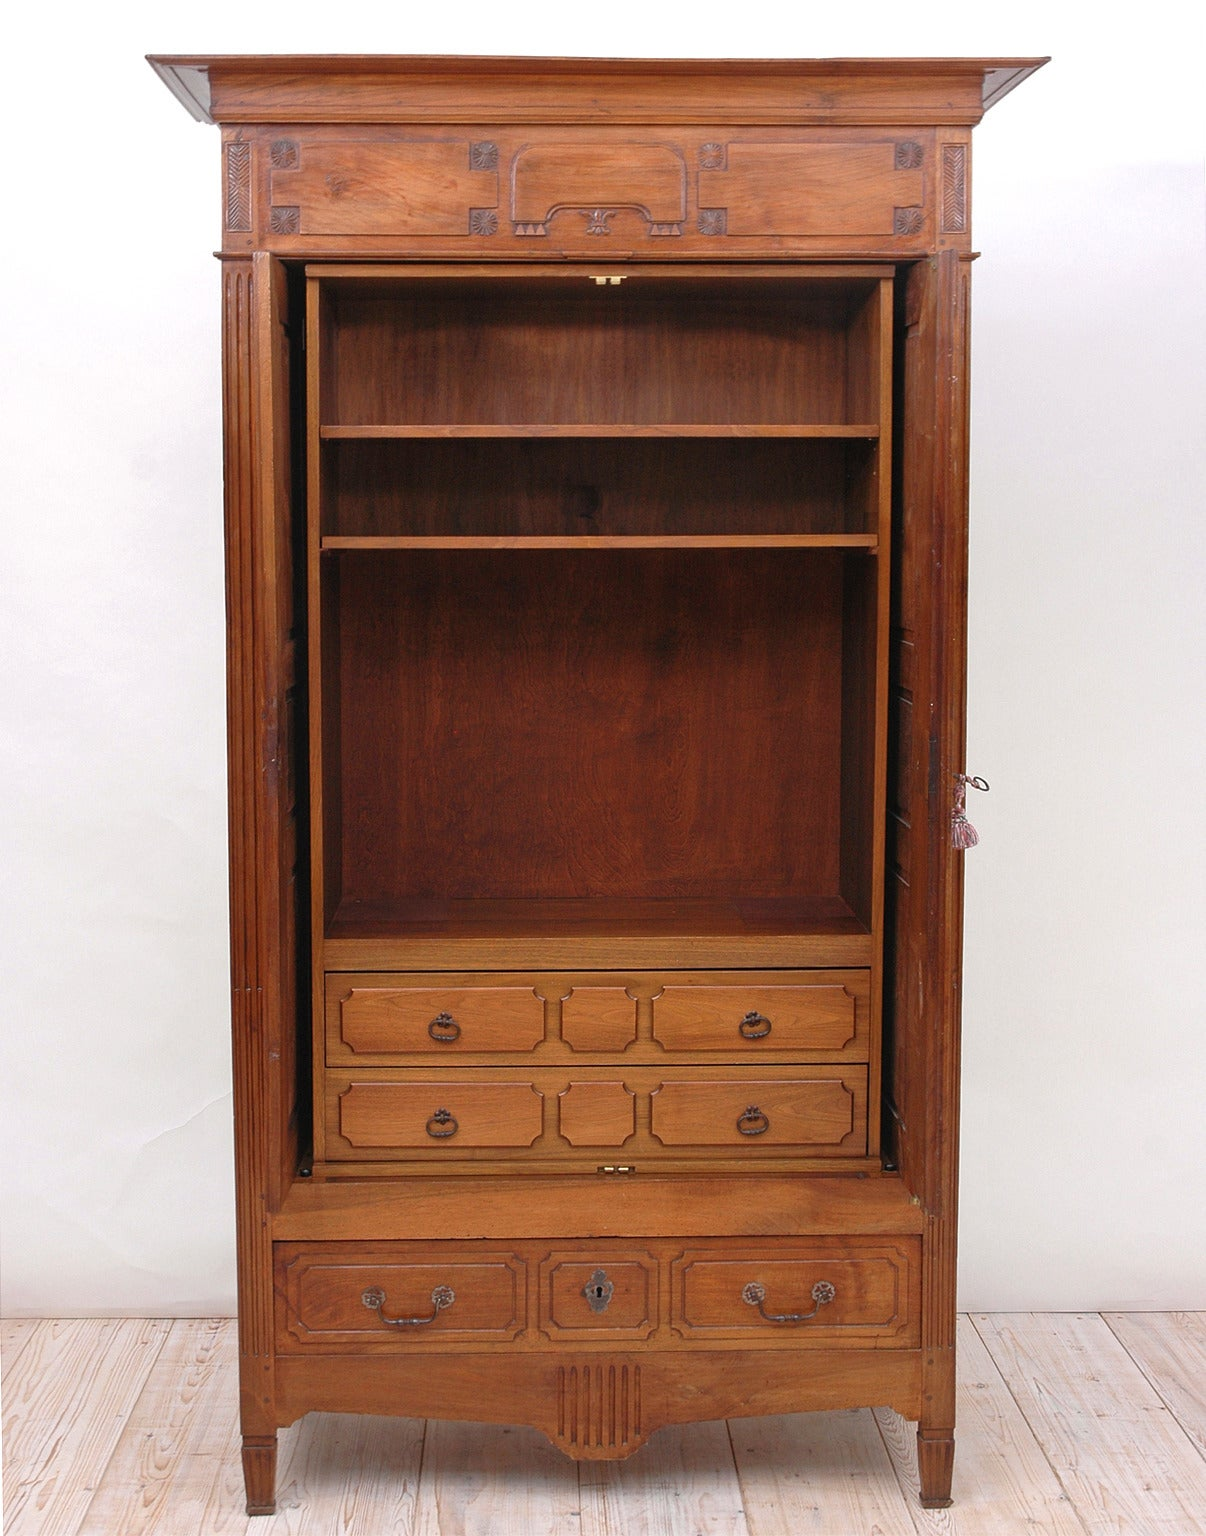 French Directoire Armoire In Walnut For Sale At 1stdibs